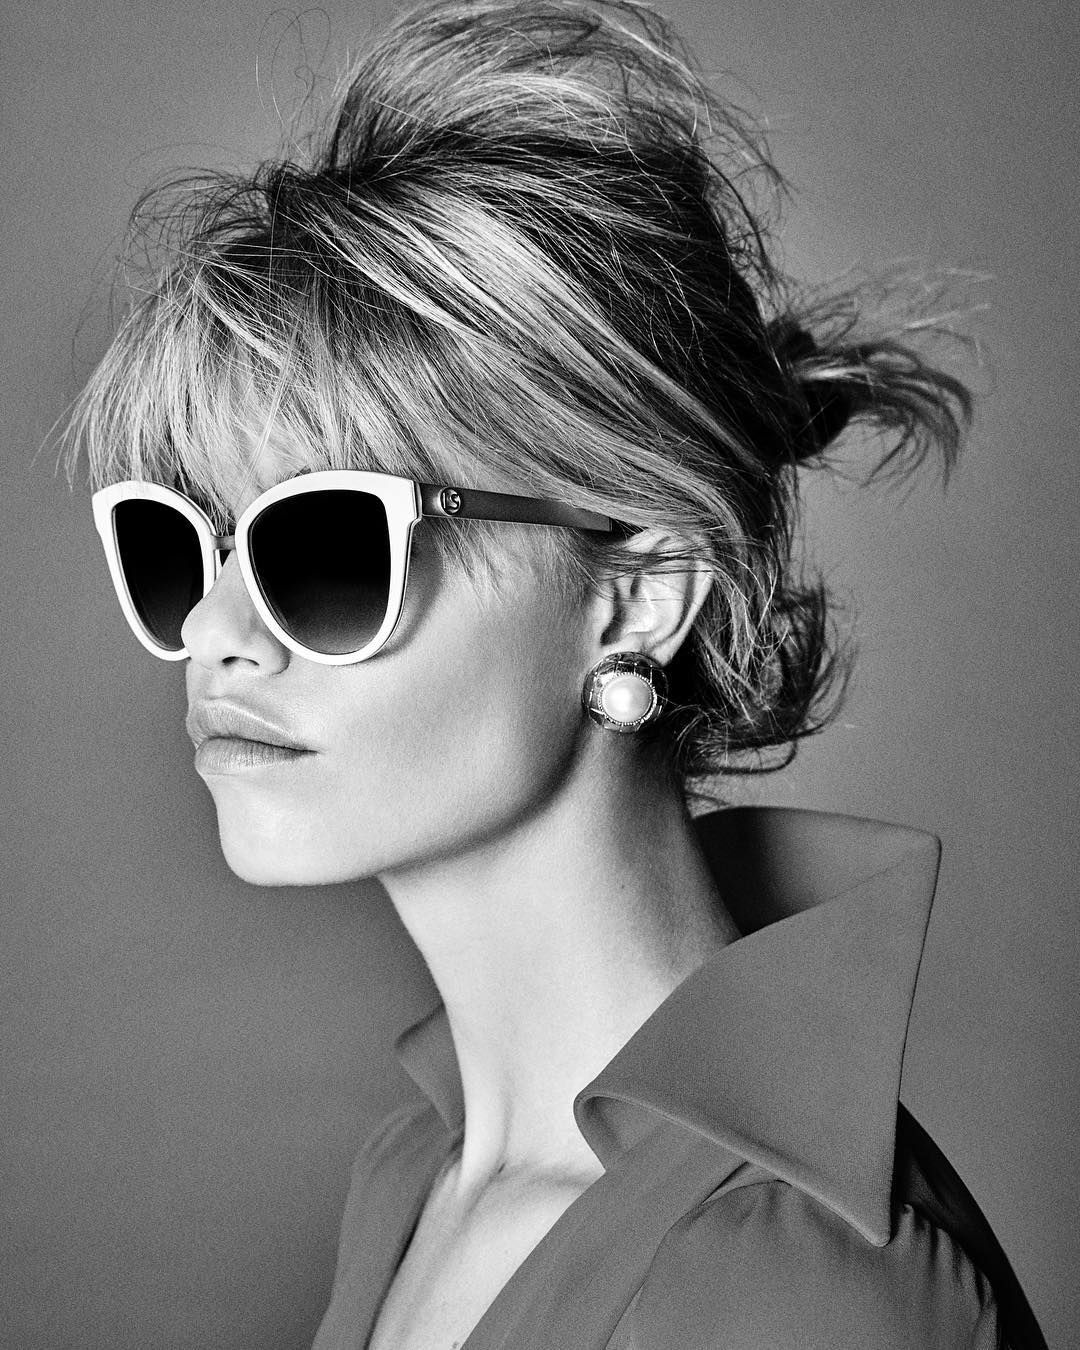 173e52a4dea Luisa Spagnoli | EYEWEAR in 2019 | Hailey clauson, Fashion, Spring ...